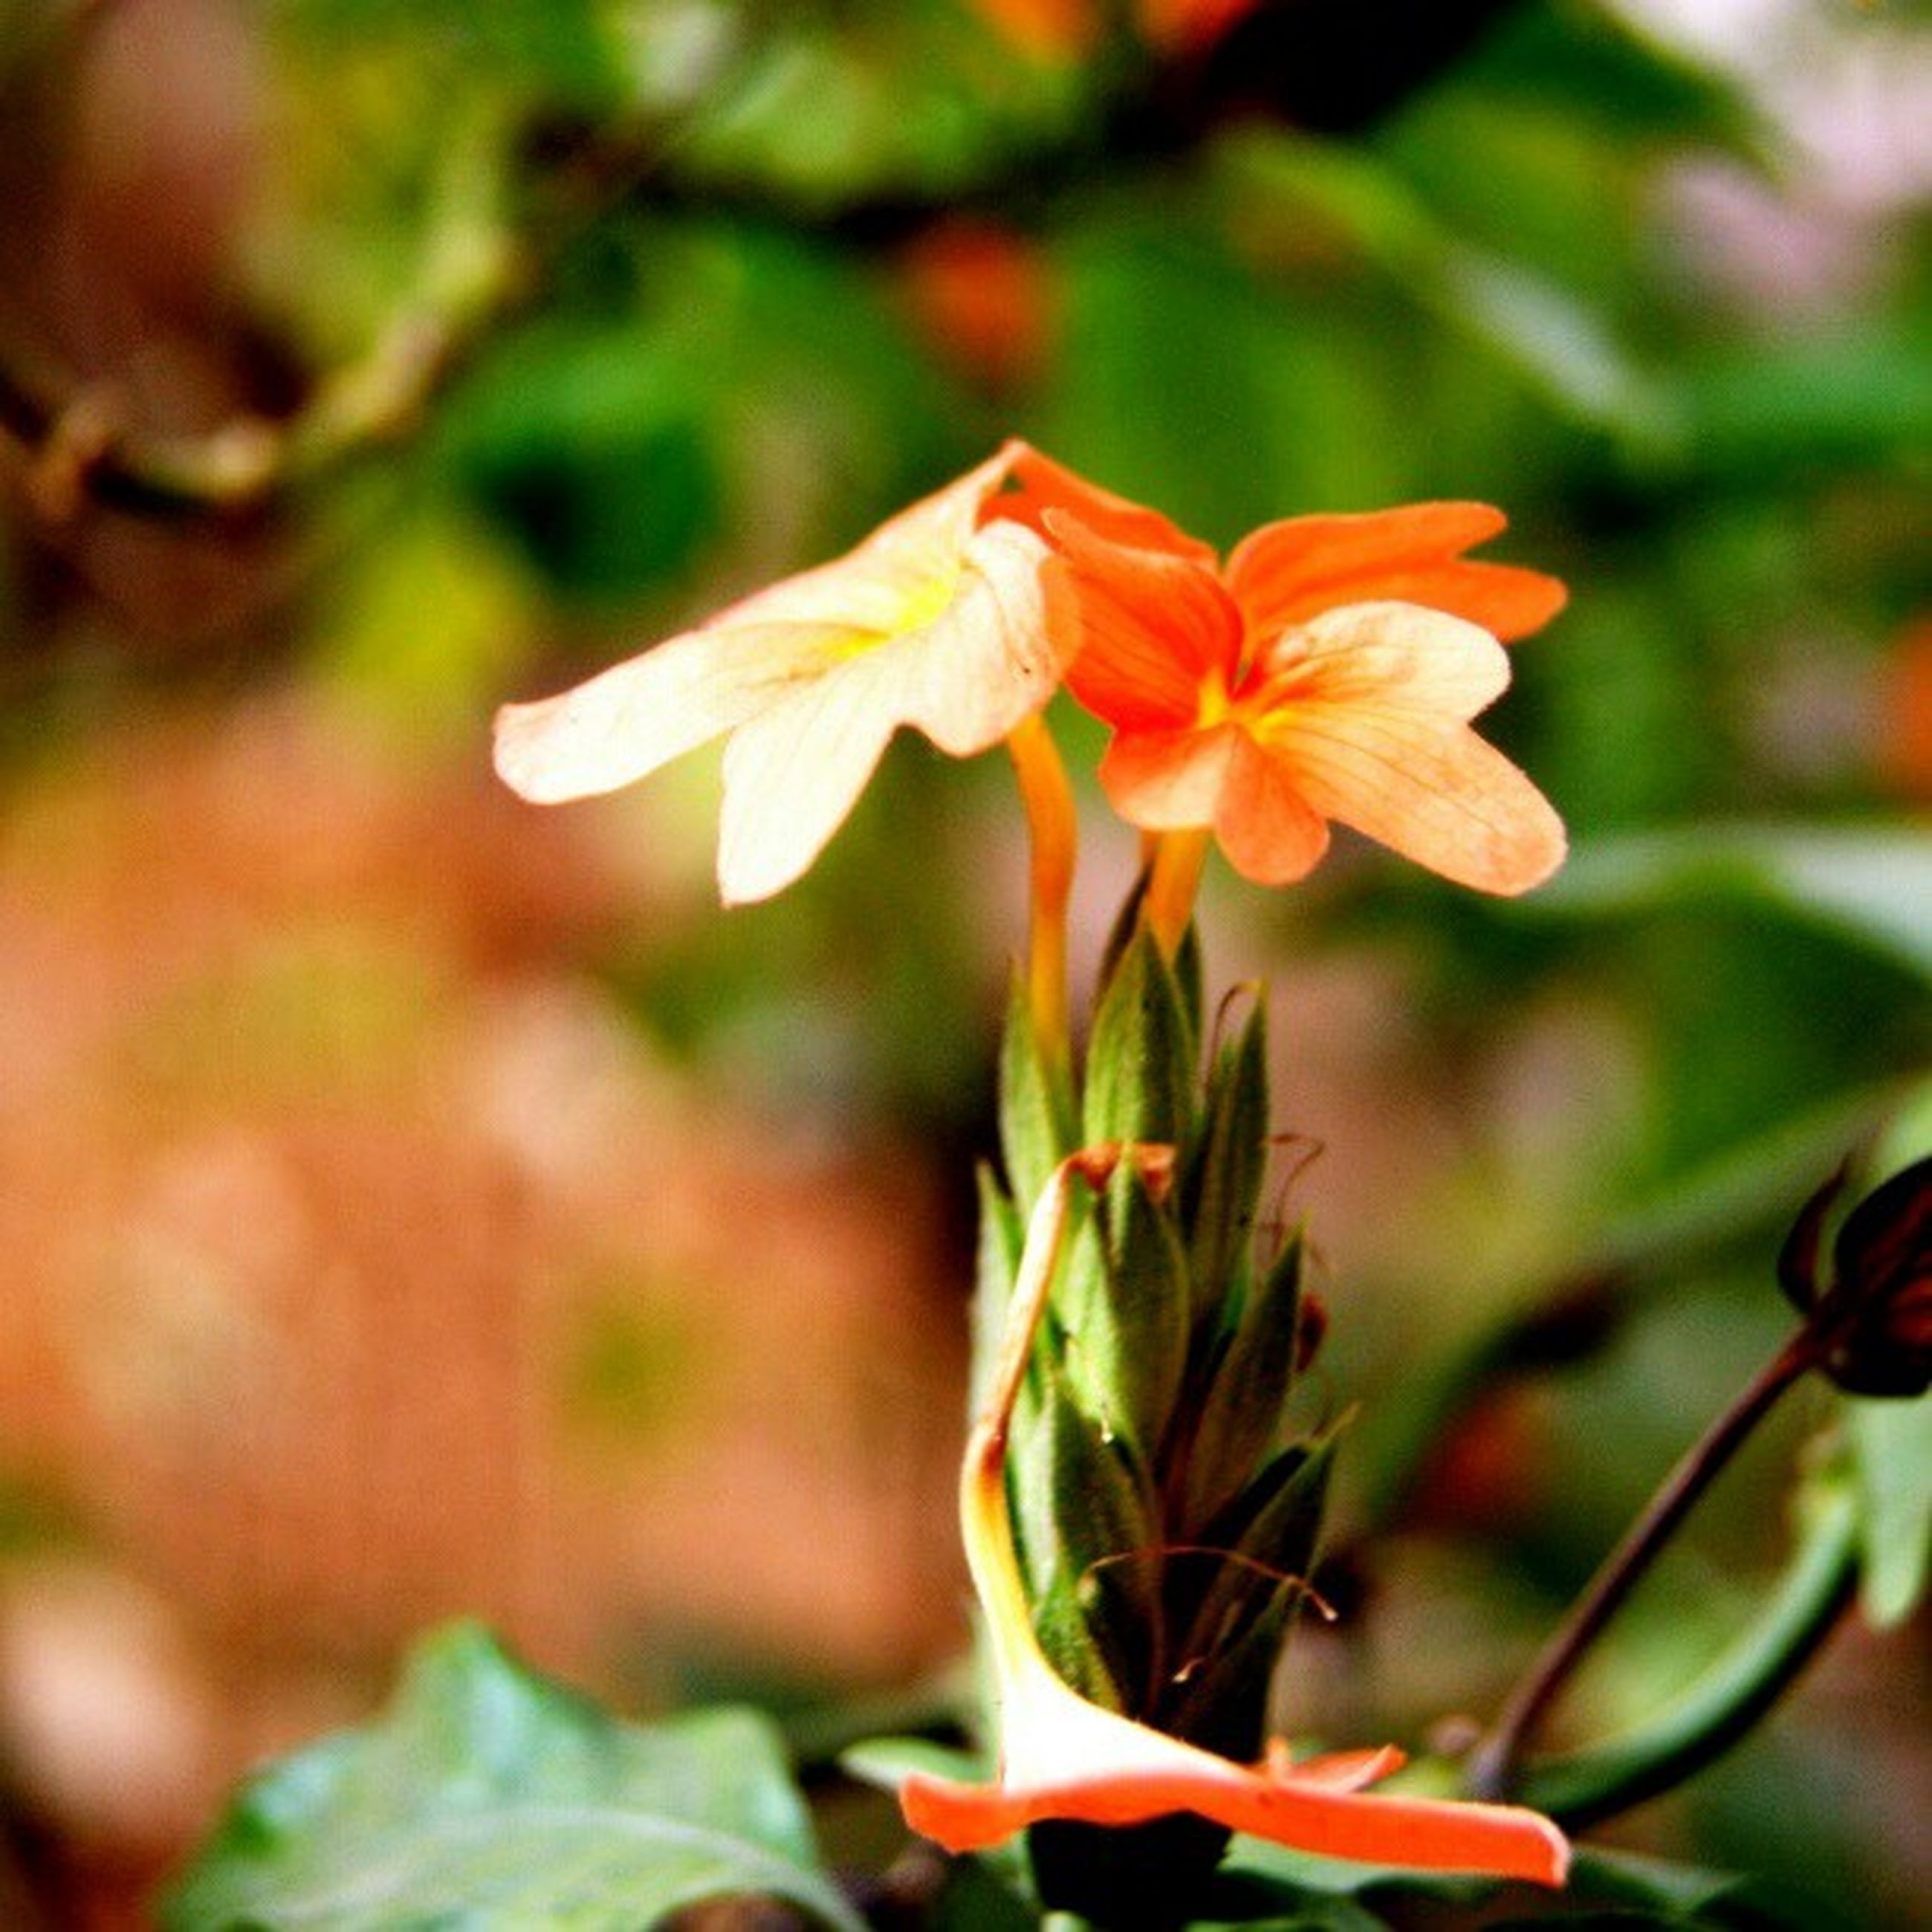 flower, petal, freshness, fragility, flower head, growth, focus on foreground, close-up, beauty in nature, blooming, plant, nature, stem, in bloom, leaf, stamen, bud, orange color, pollen, single flower